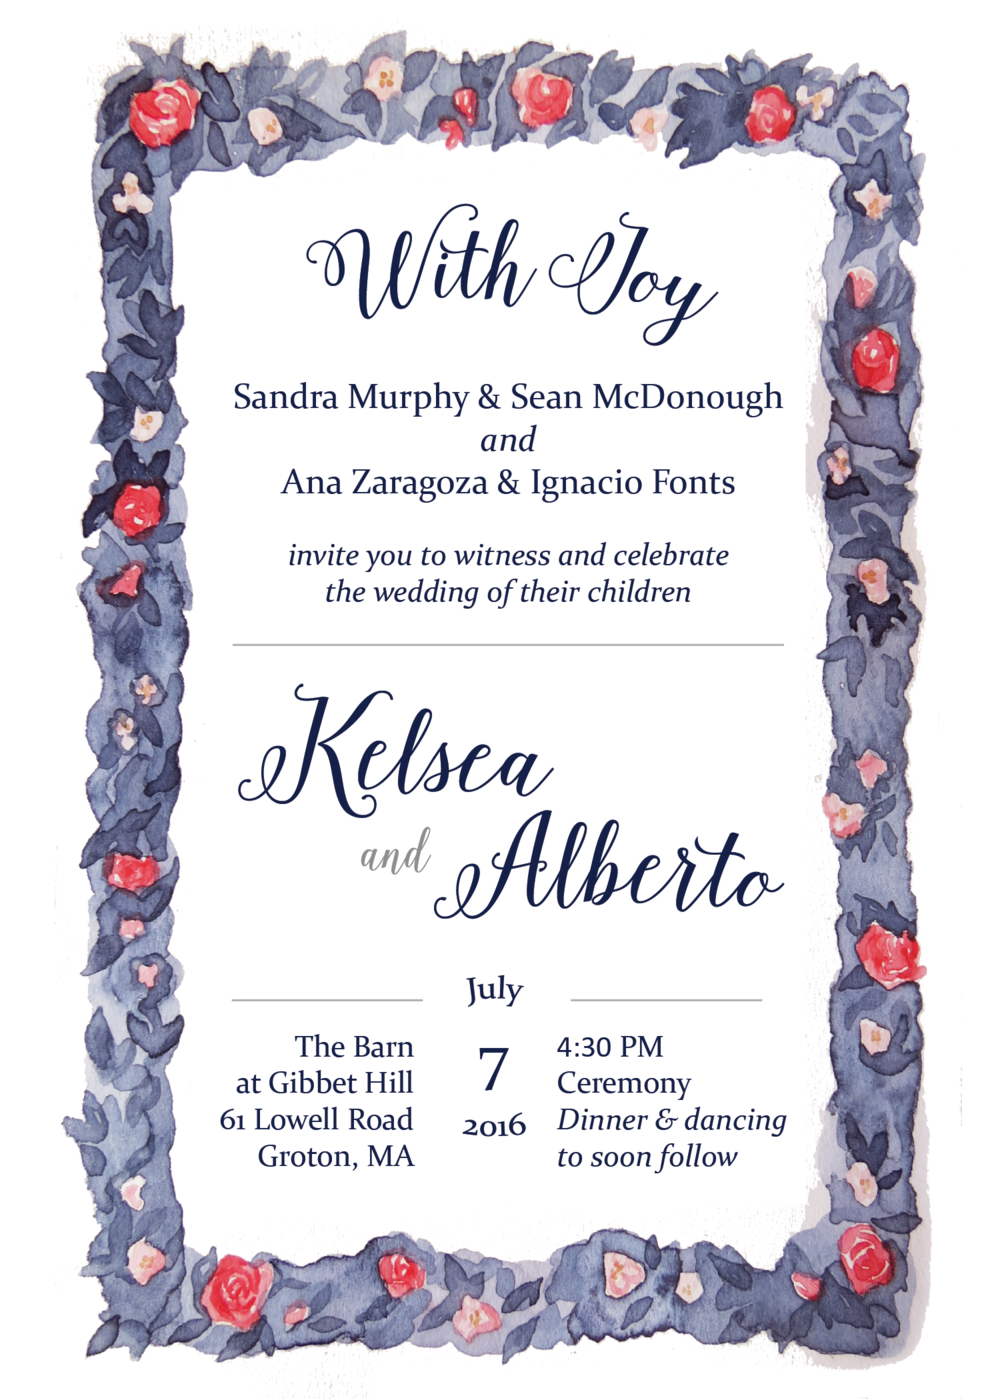 Kelsea & Alberto Wedding Invitation